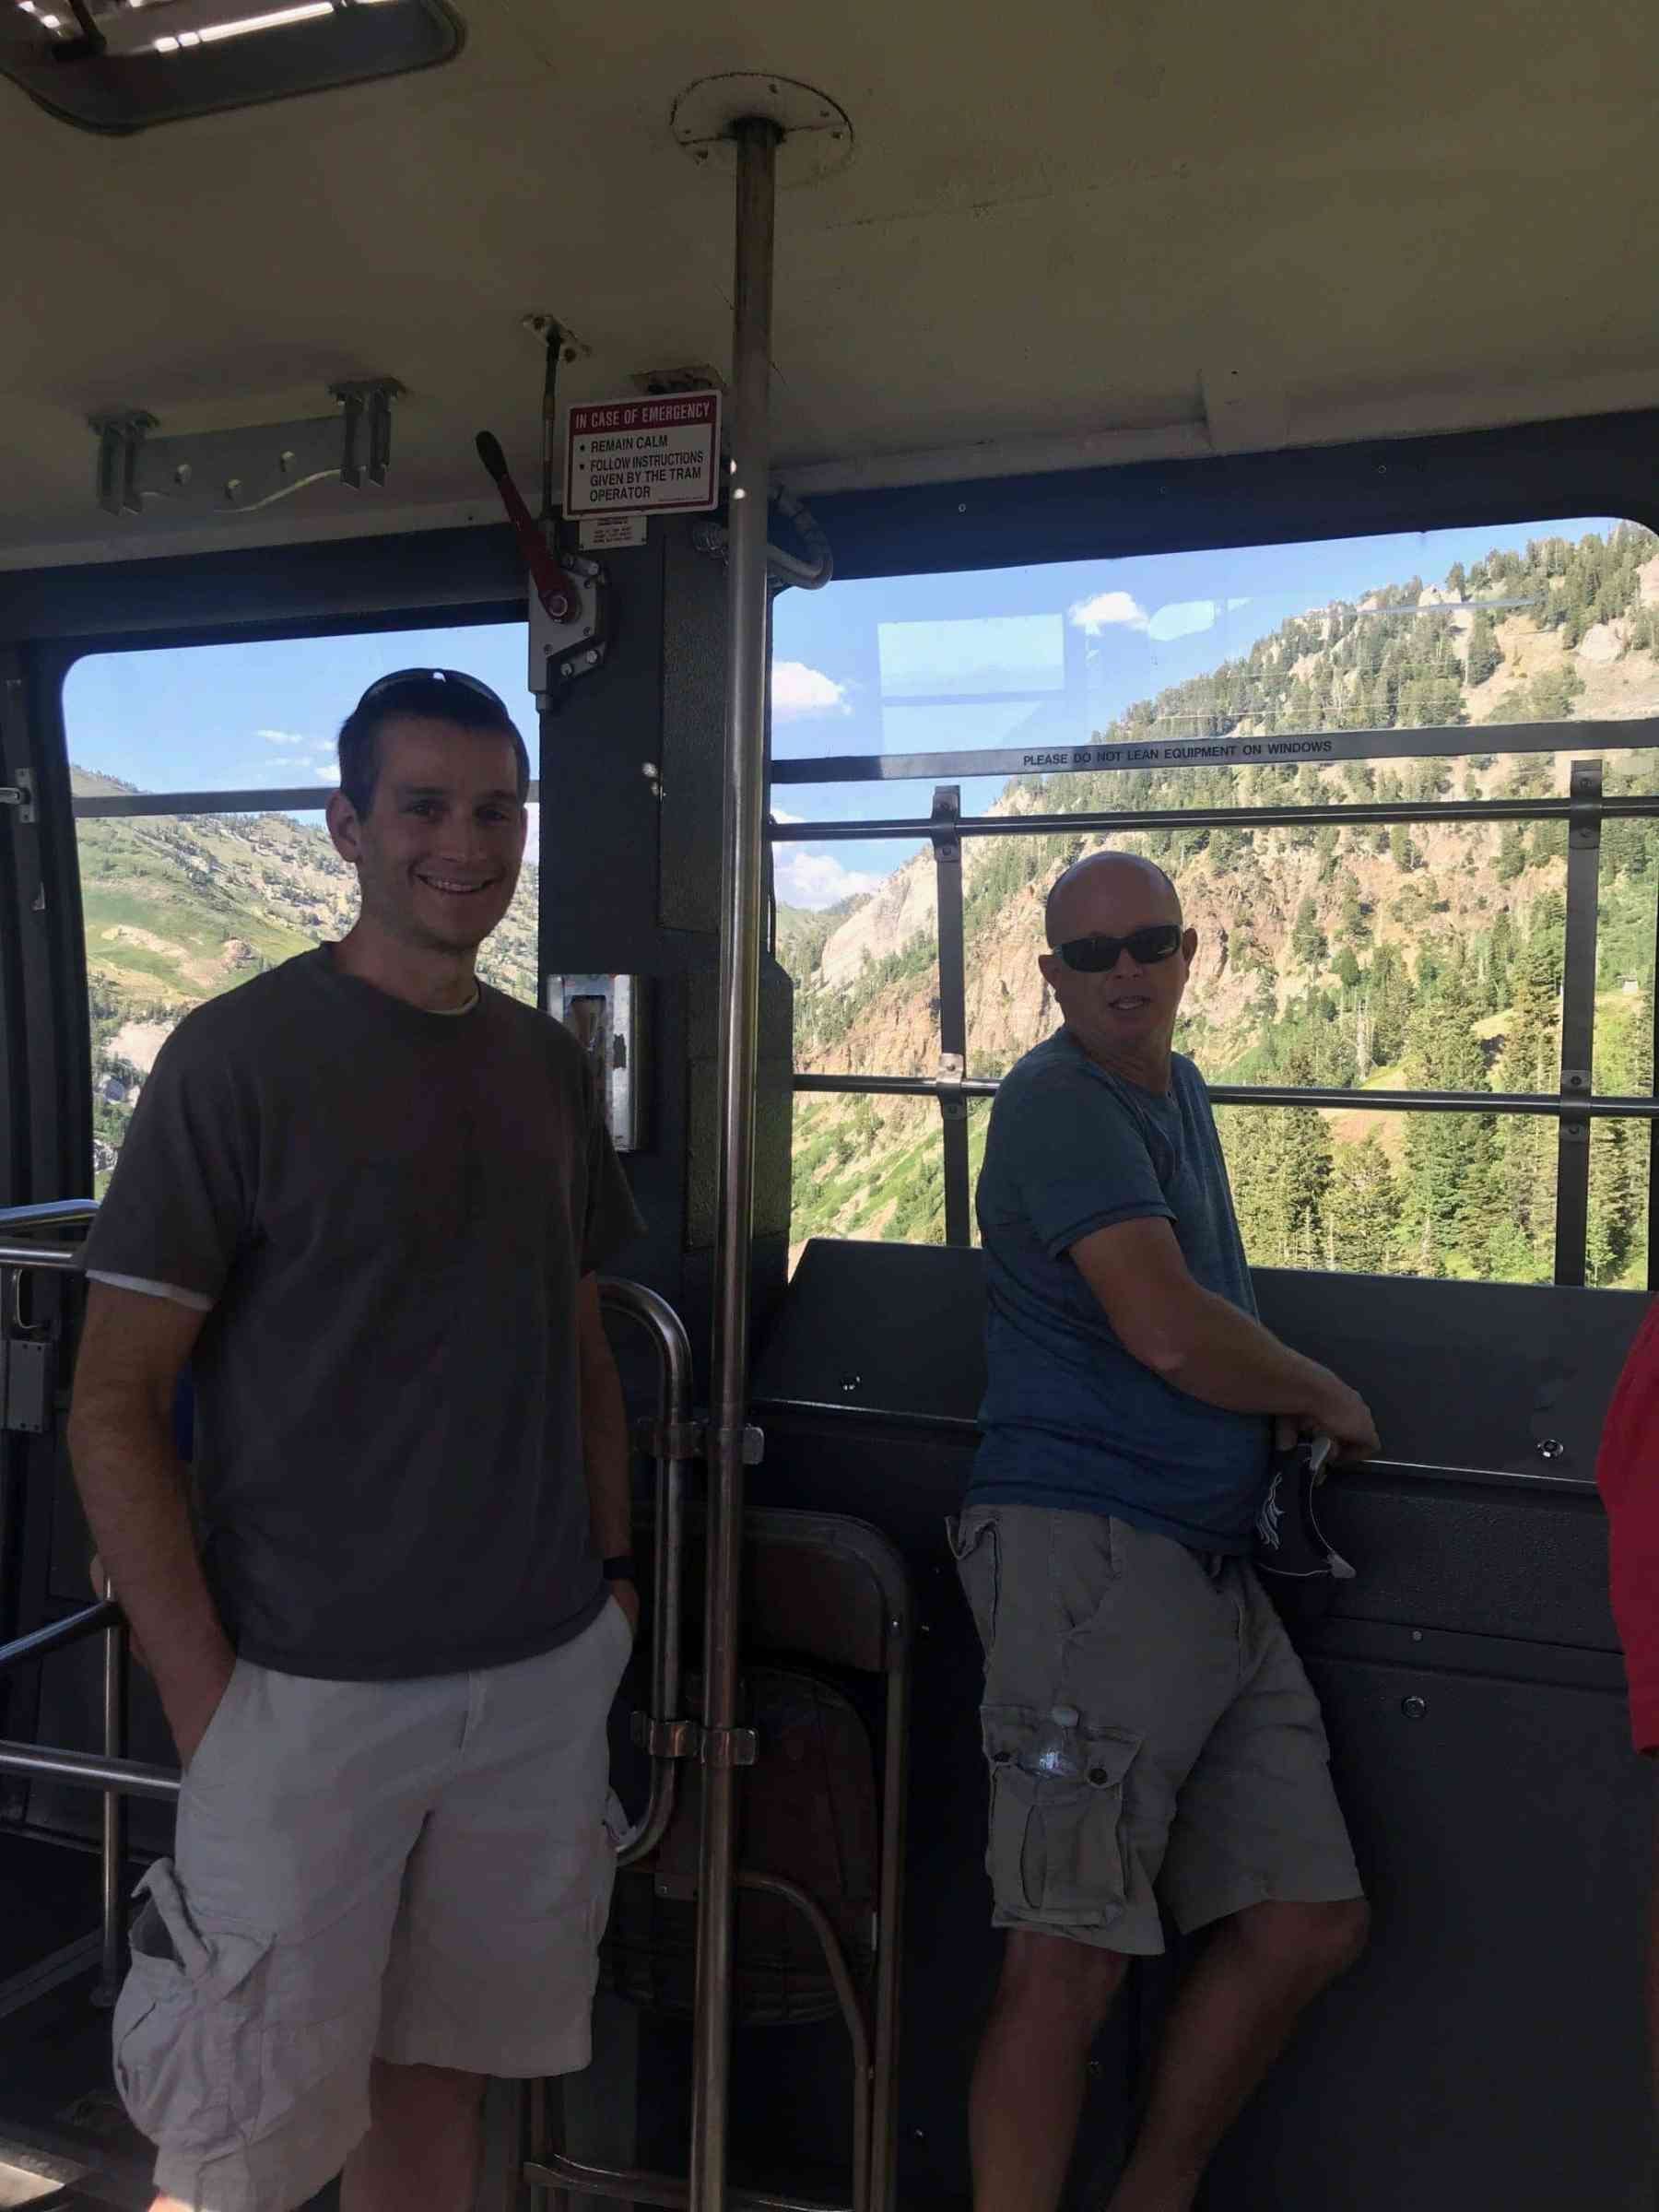 Riding the tram to the top!